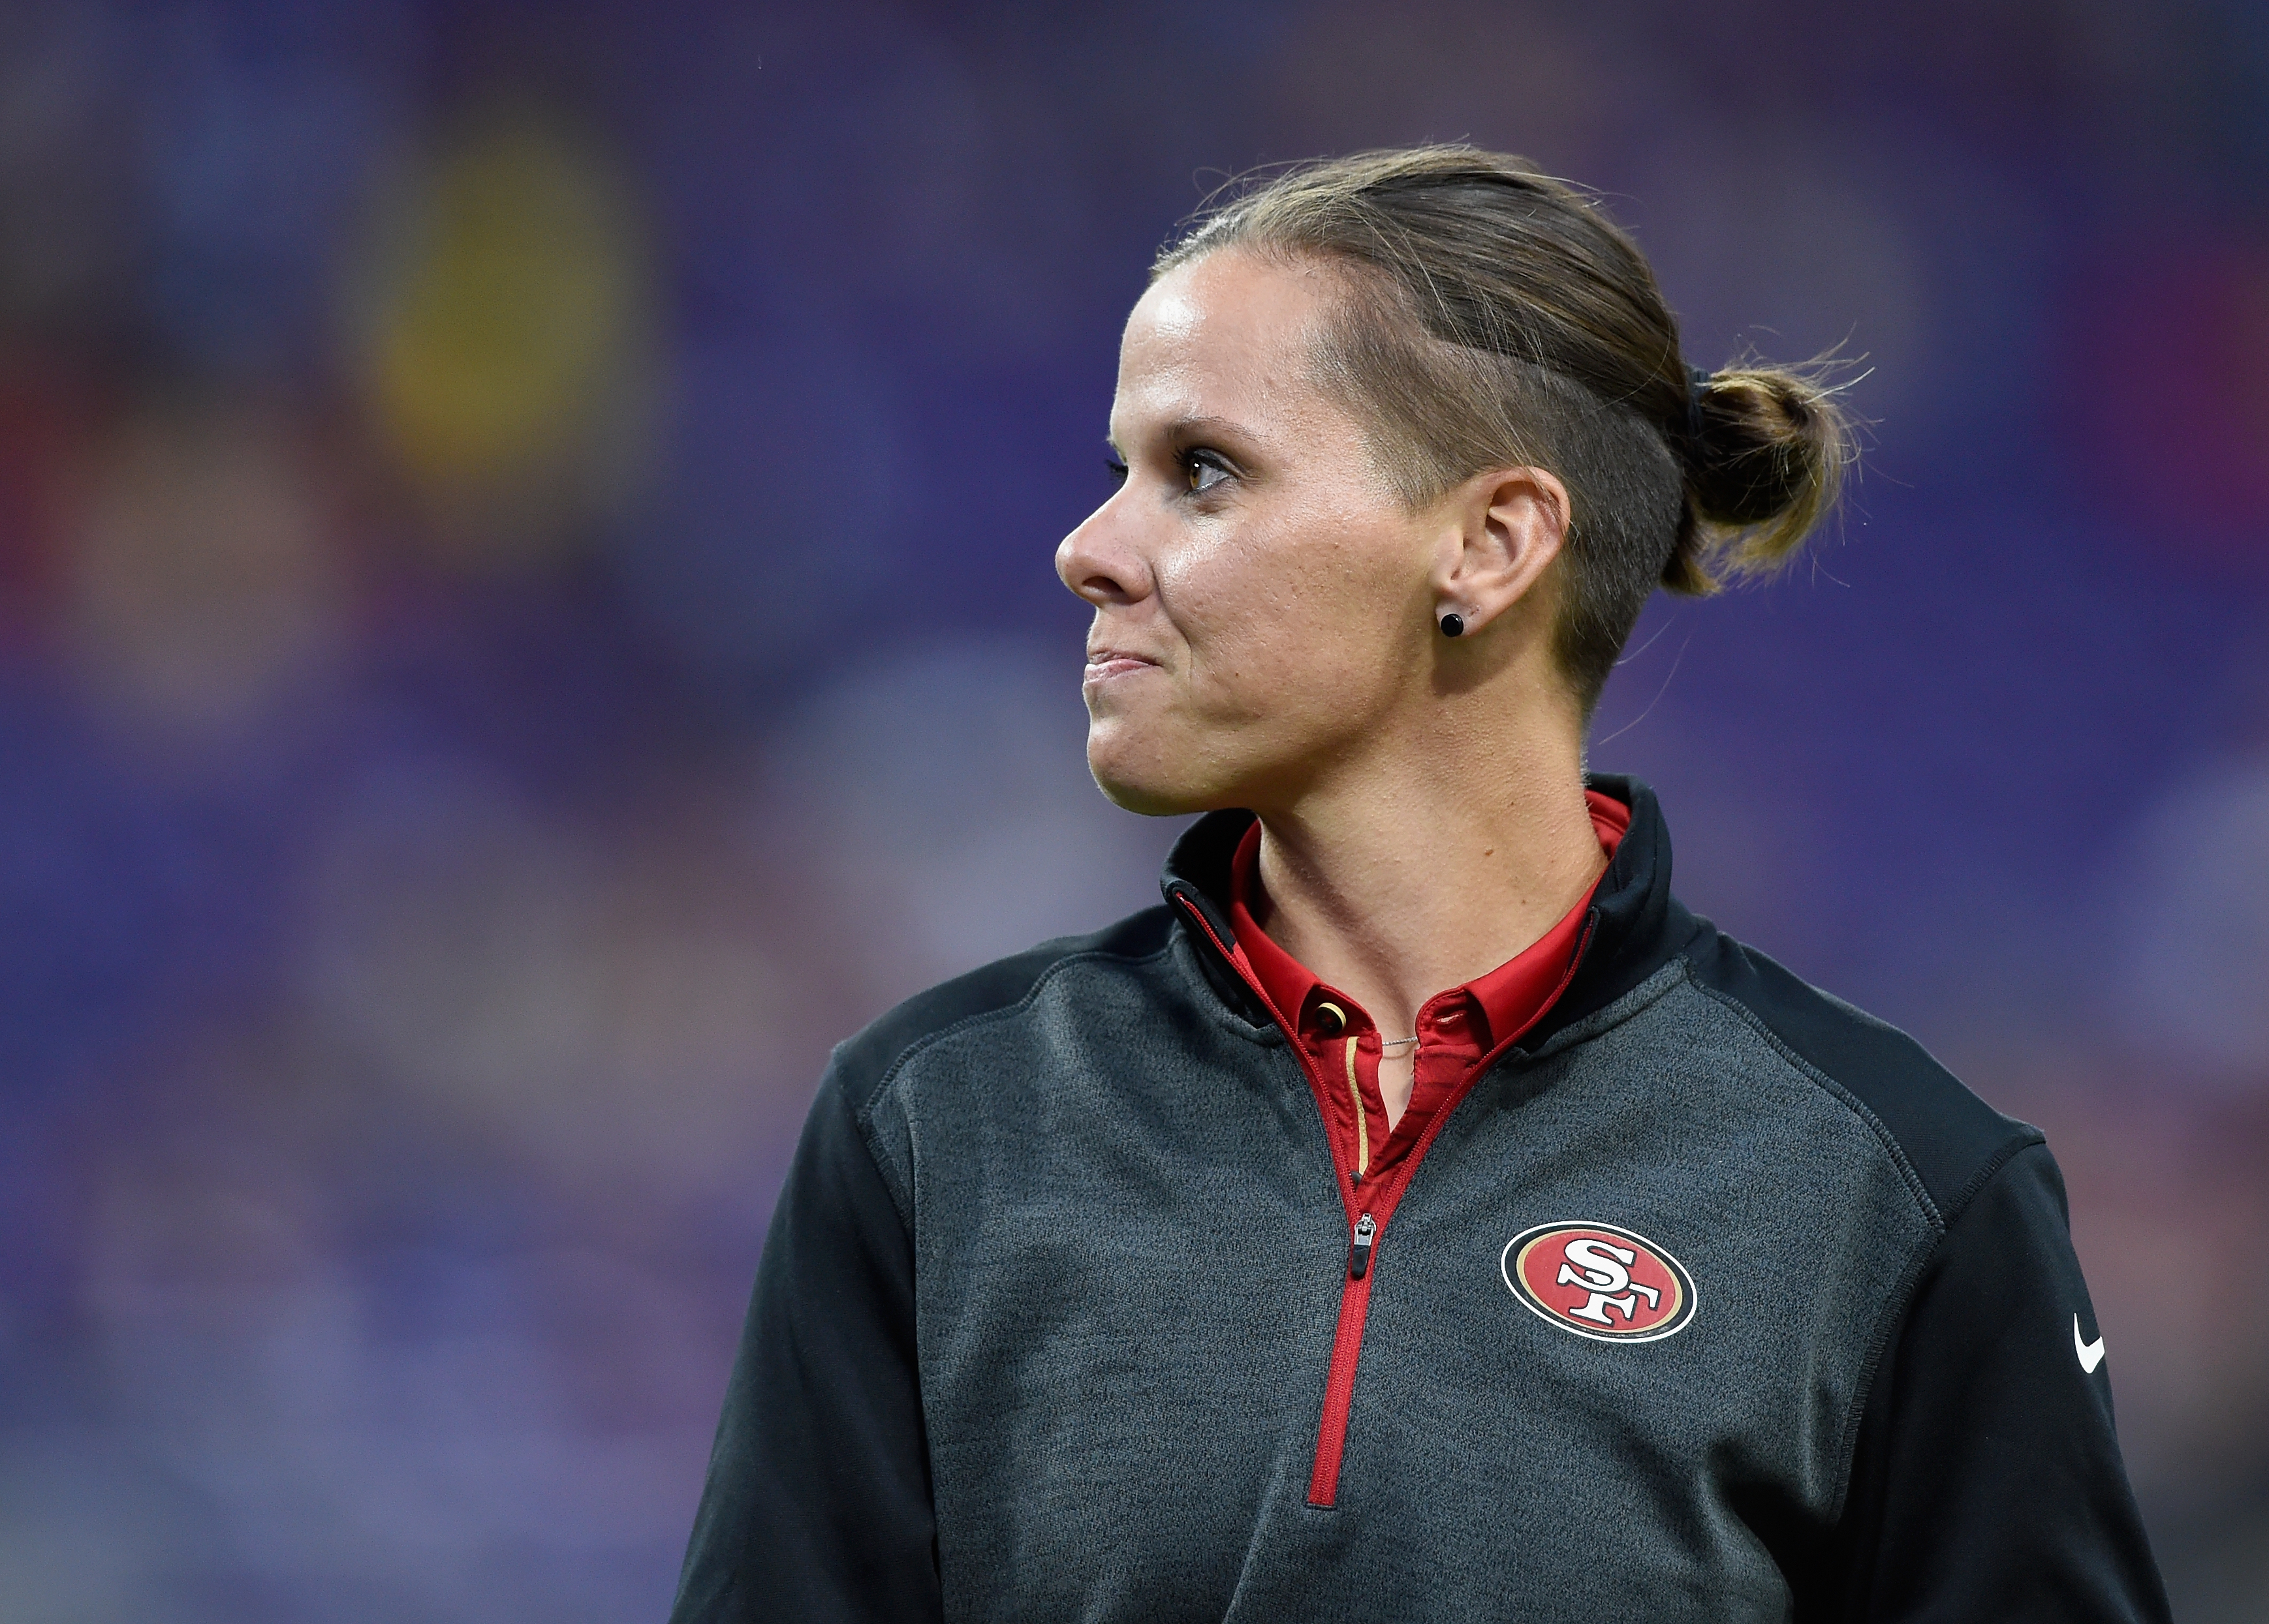 49ers' Katie Sowers is the first woman and openly gay coach in Super Bowl history